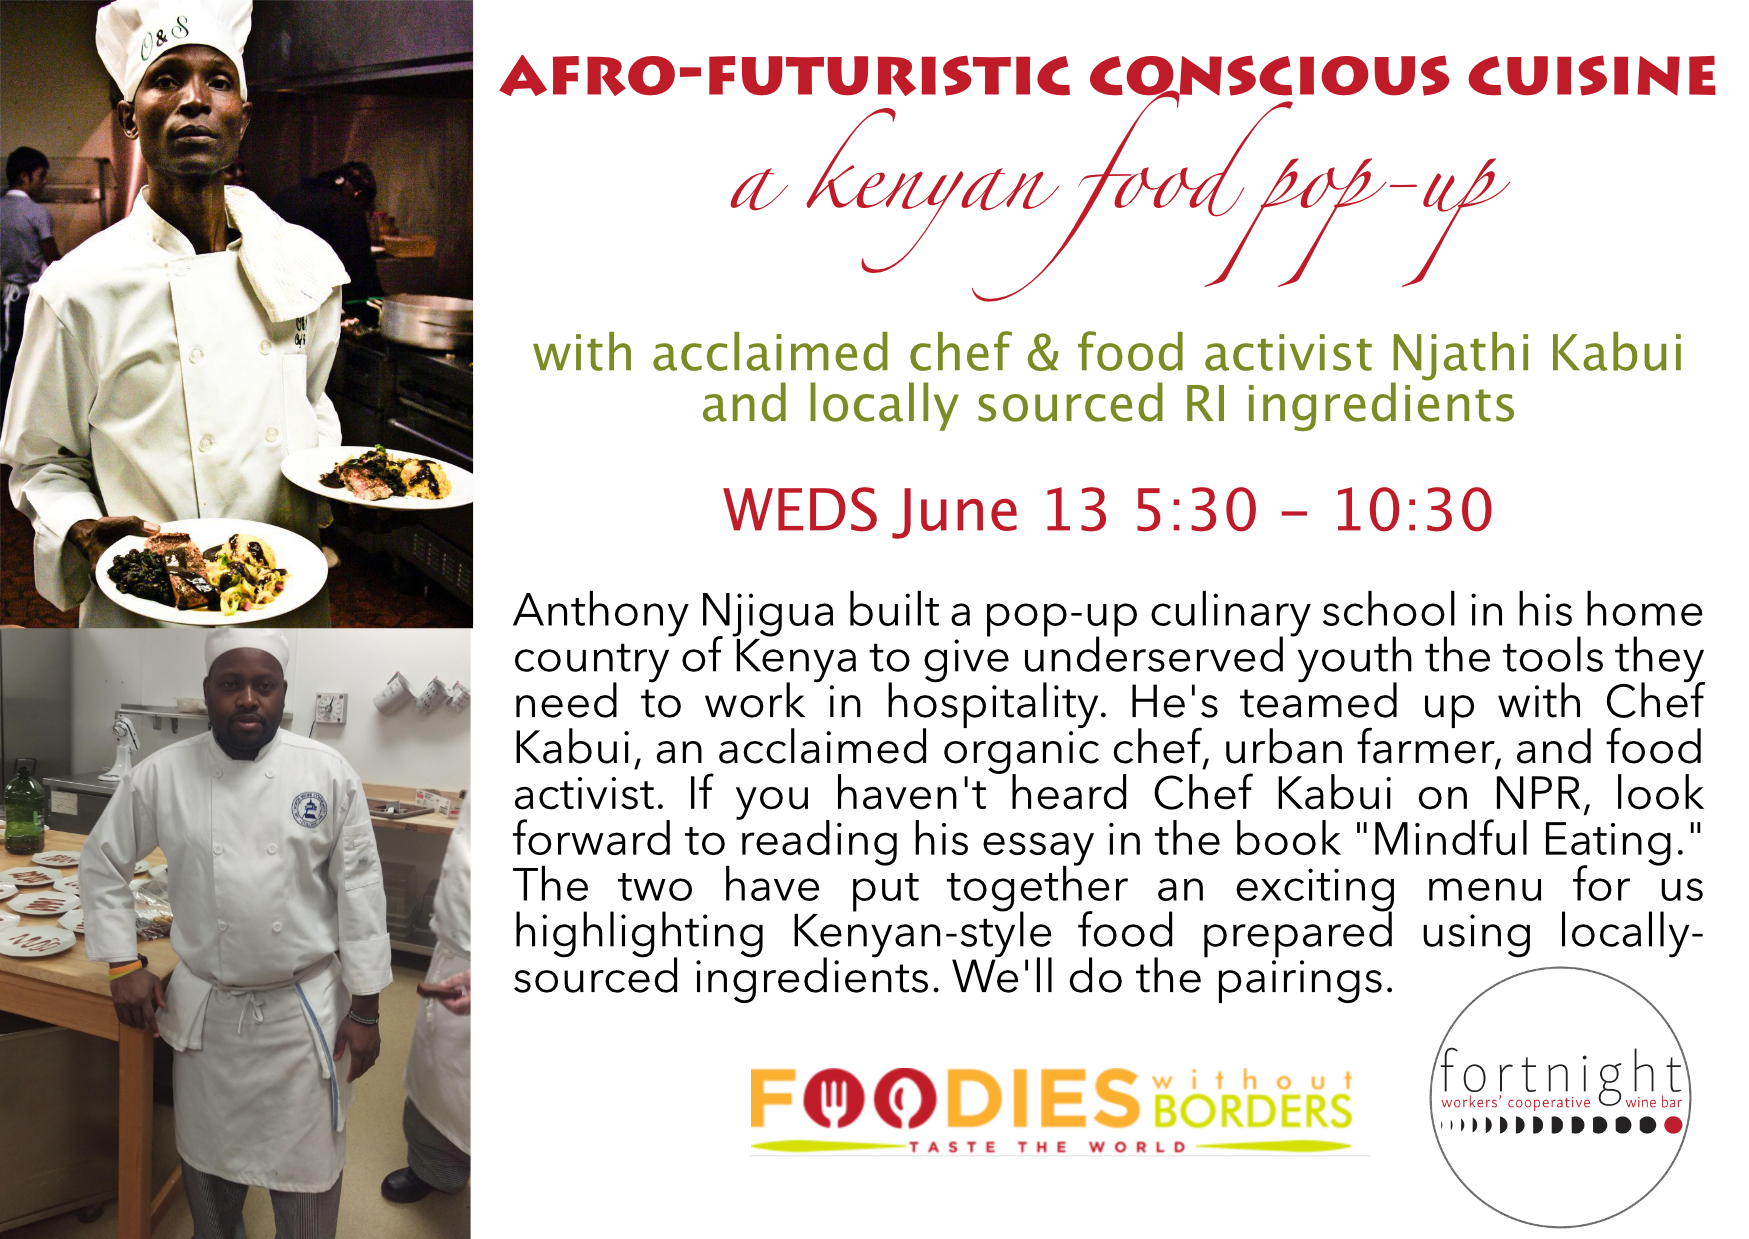 fortnight wine bar Kenyan Food Pop-Up